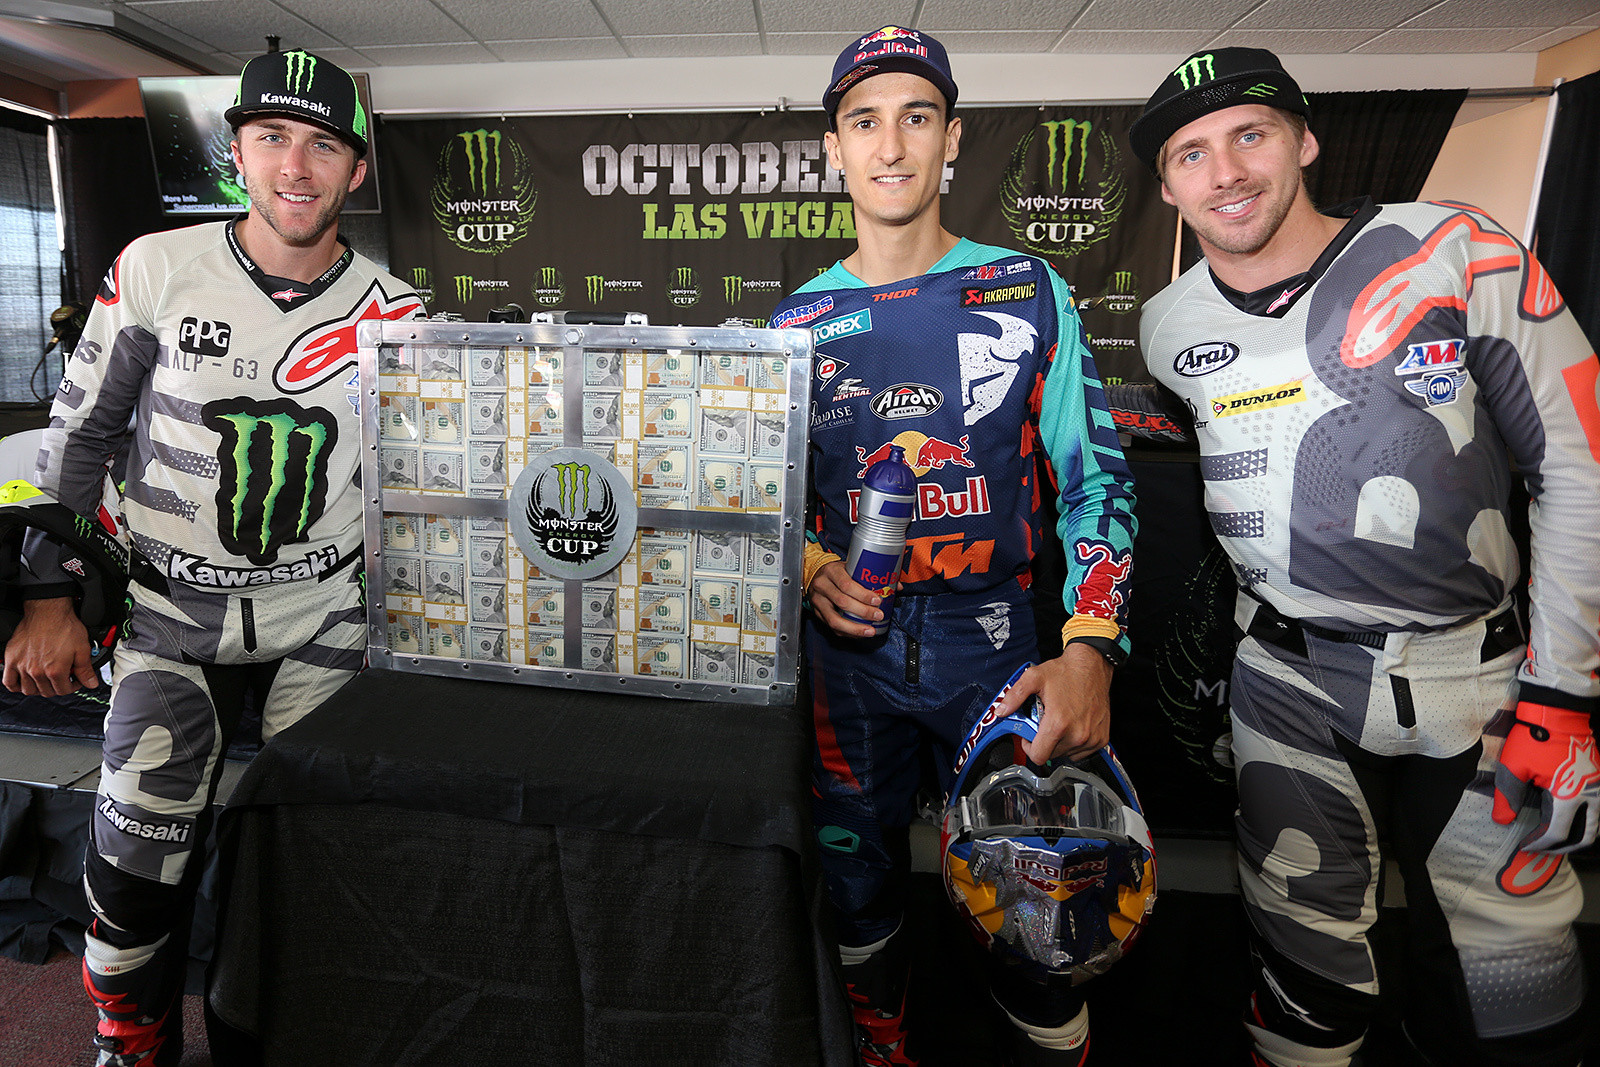 Can Marvin Musquin take the million against two former overall winners of Eli Tomac and Justin Barcia?